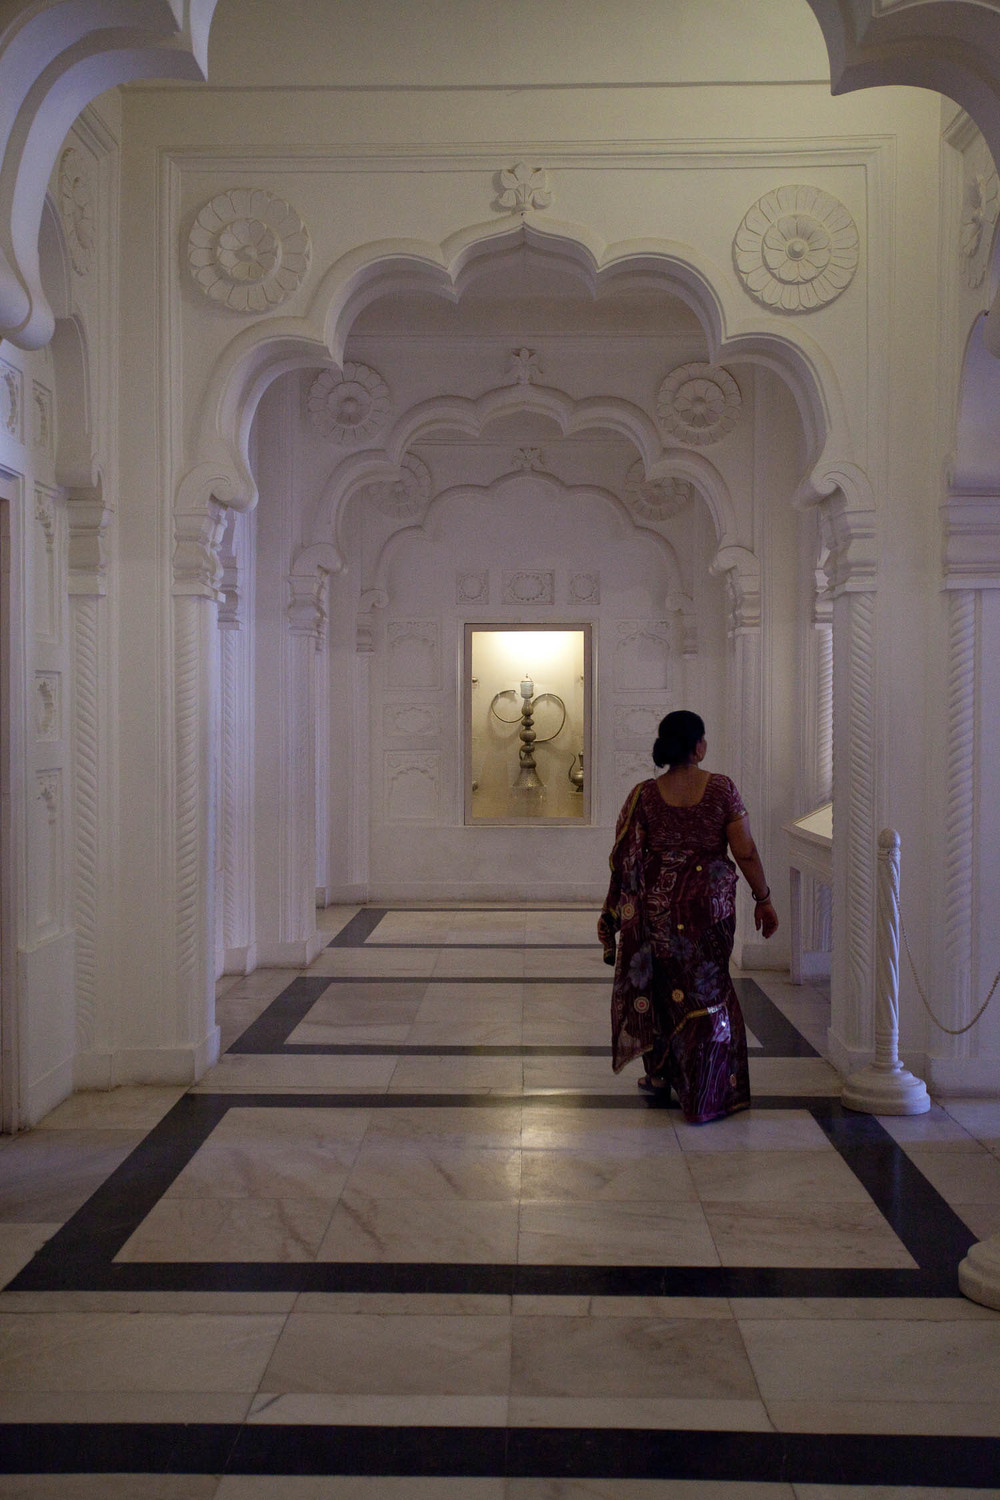 Indian-lady-hallway-white-jodpur-fort-rajasthan-india-asia-travel